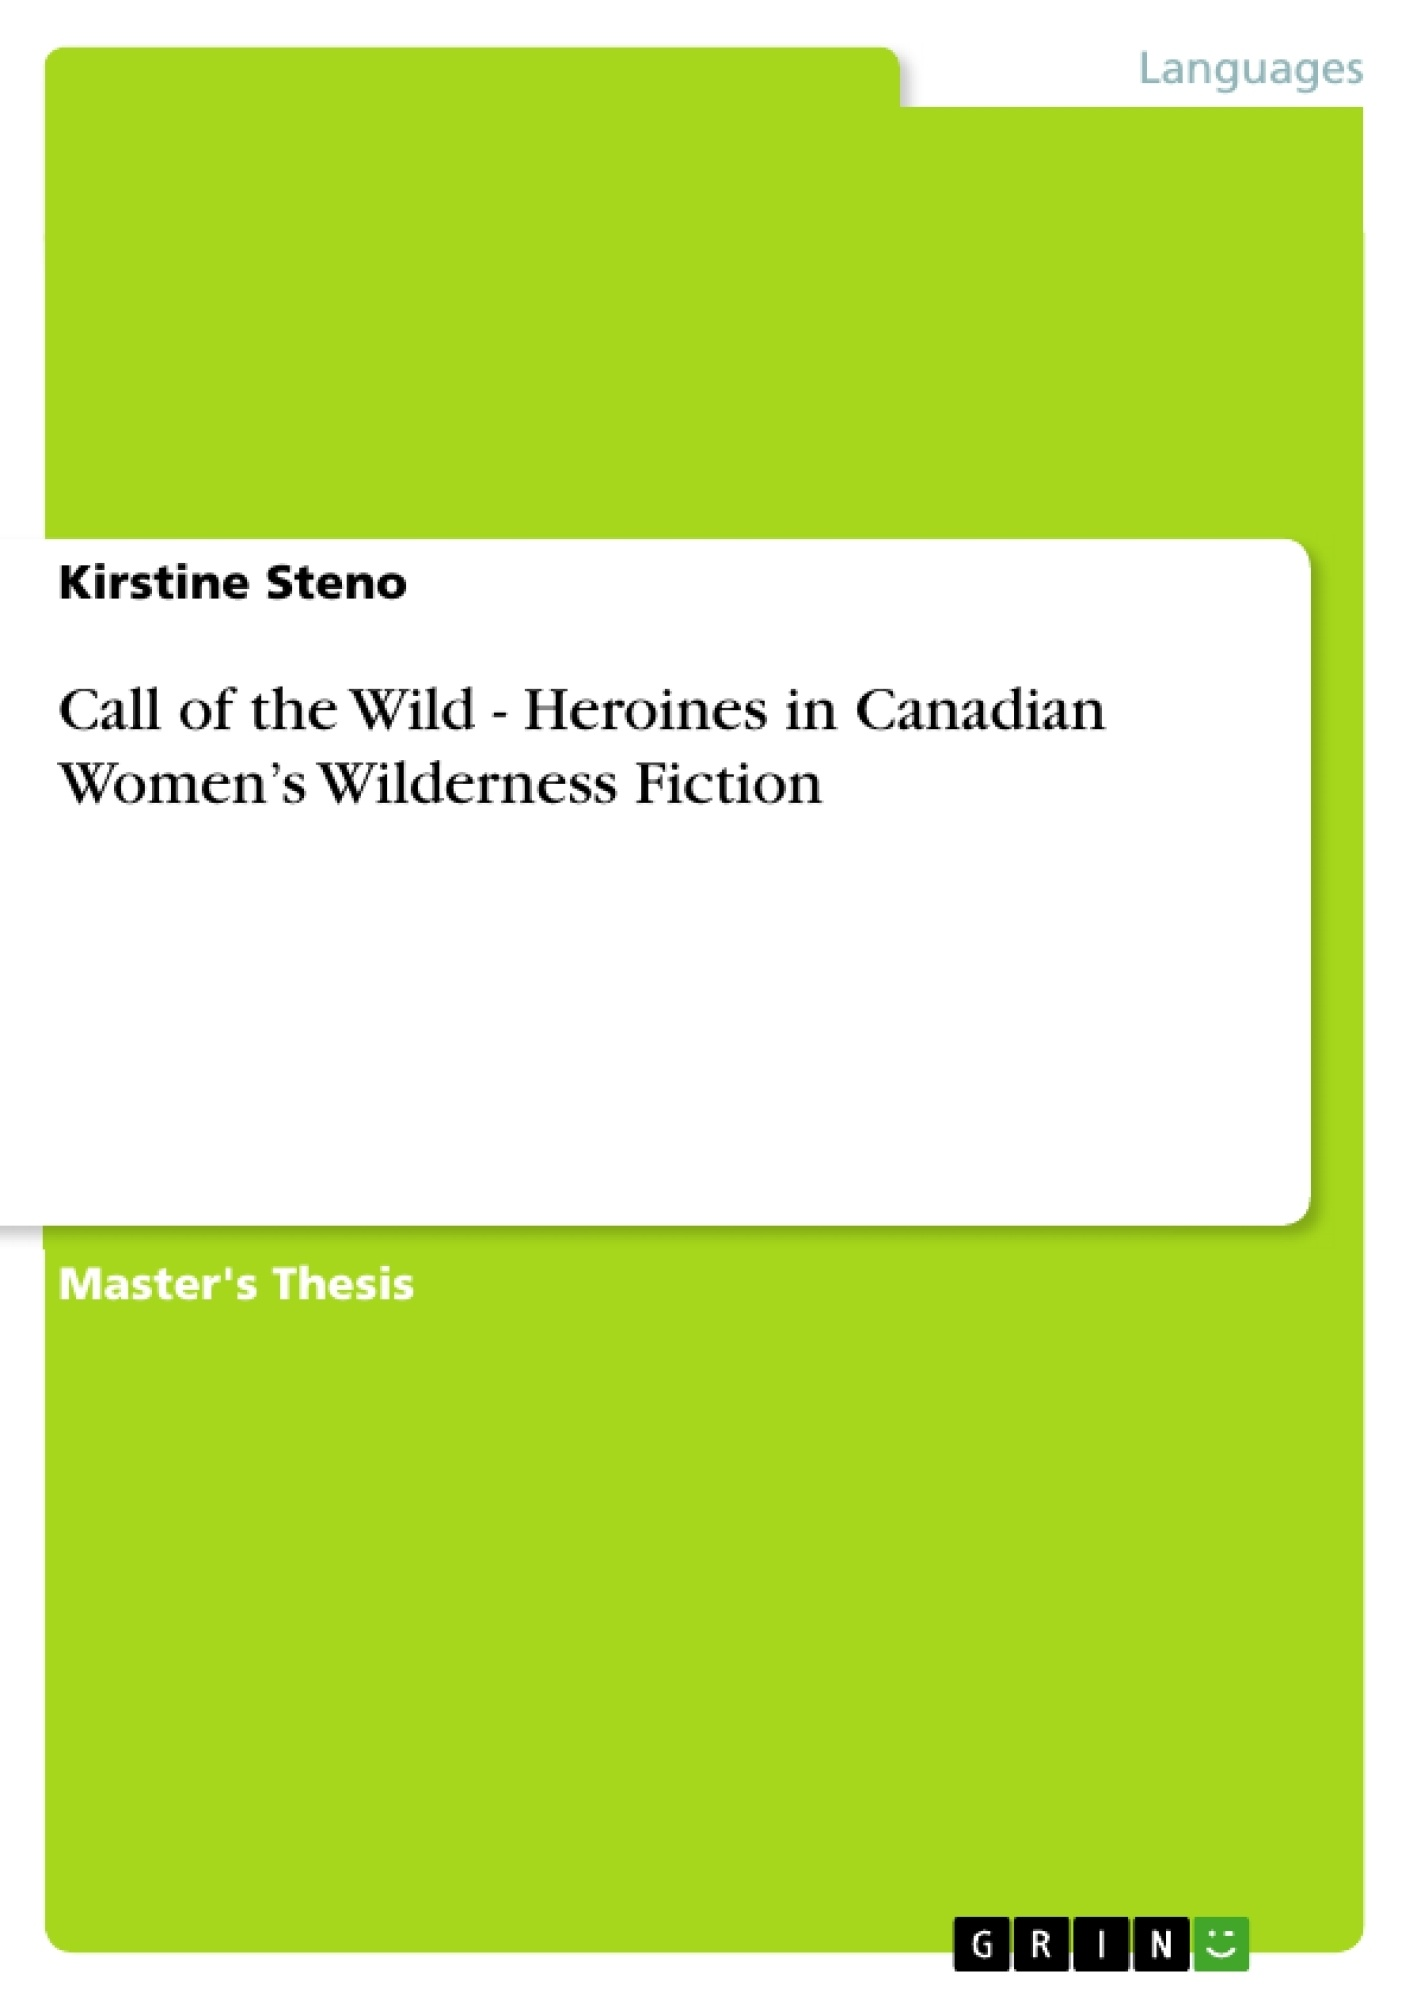 Title: Call of the Wild - Heroines in Canadian Women's Wilderness Fiction